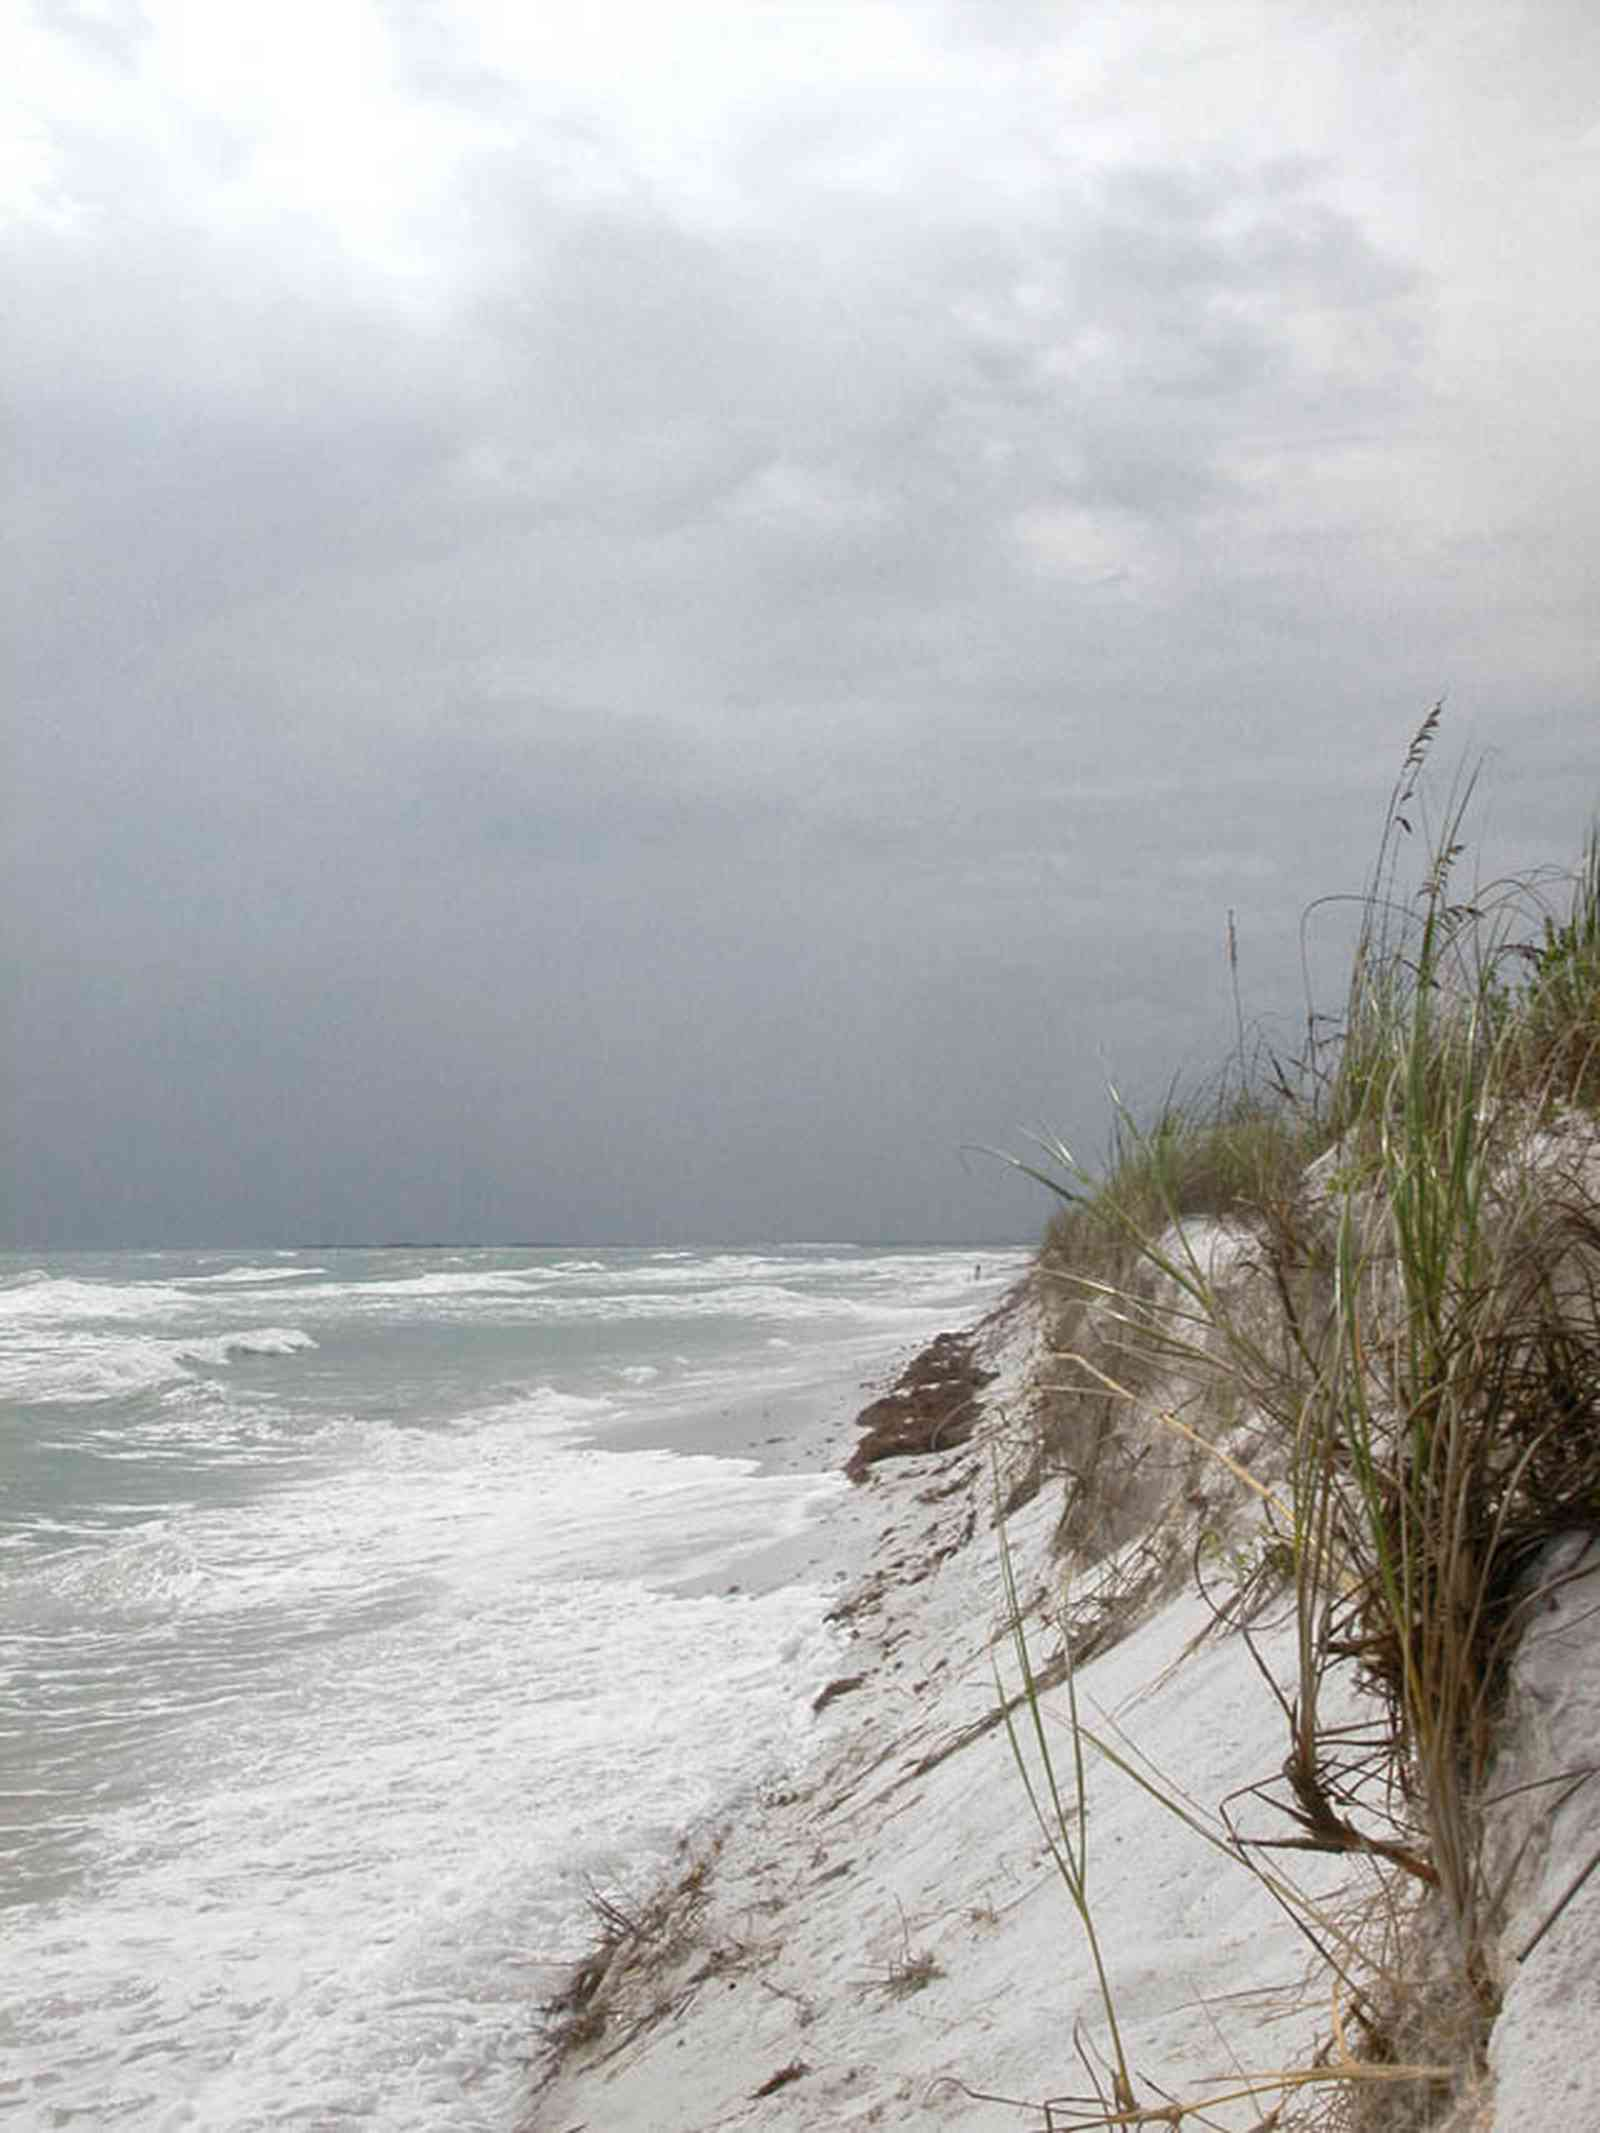 Gulf-Islands-National-Seashore:-Fort-Pickens:-Battery-234_06.jpg:  surf, waves, gulf of mexcio, barrier island, sea oats, sea weed, storm